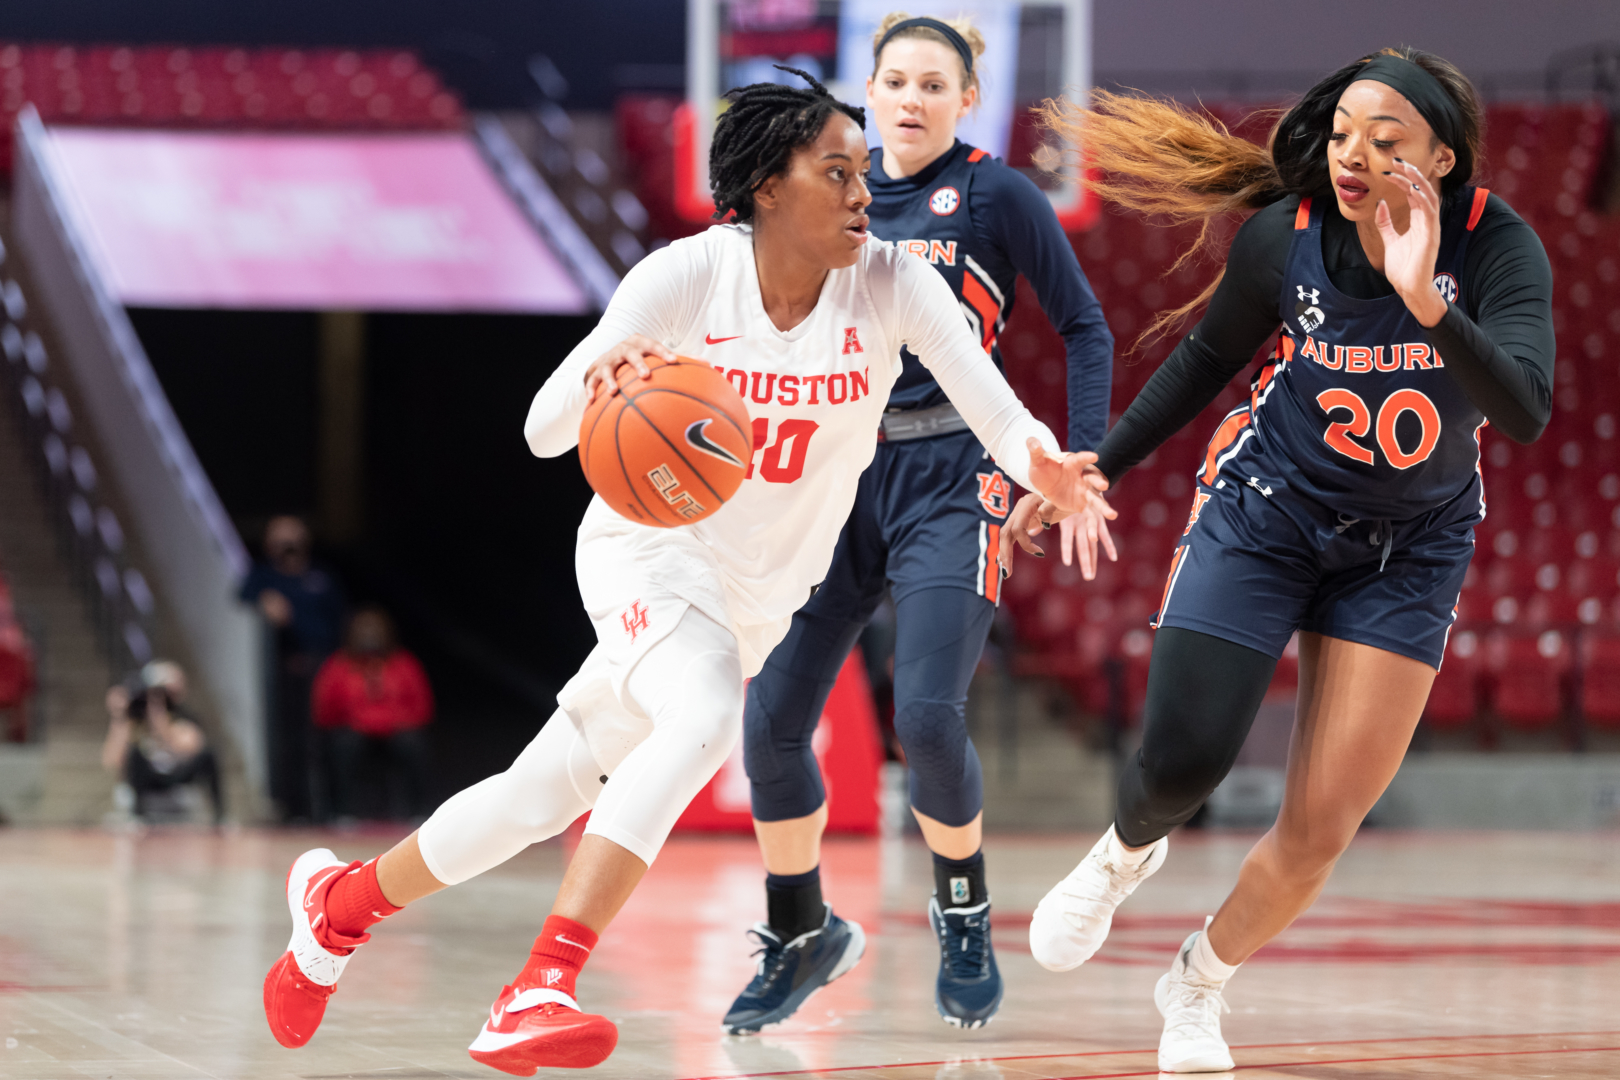 Sophomore guard Britney Onyeje lit it up from downtown against Auburn, scoring 15 points on five 3-pointers during the UH women's basketball team's 71-61 victory Saturday afternoon at Fertitta Center. | Courtesy of UH athletics